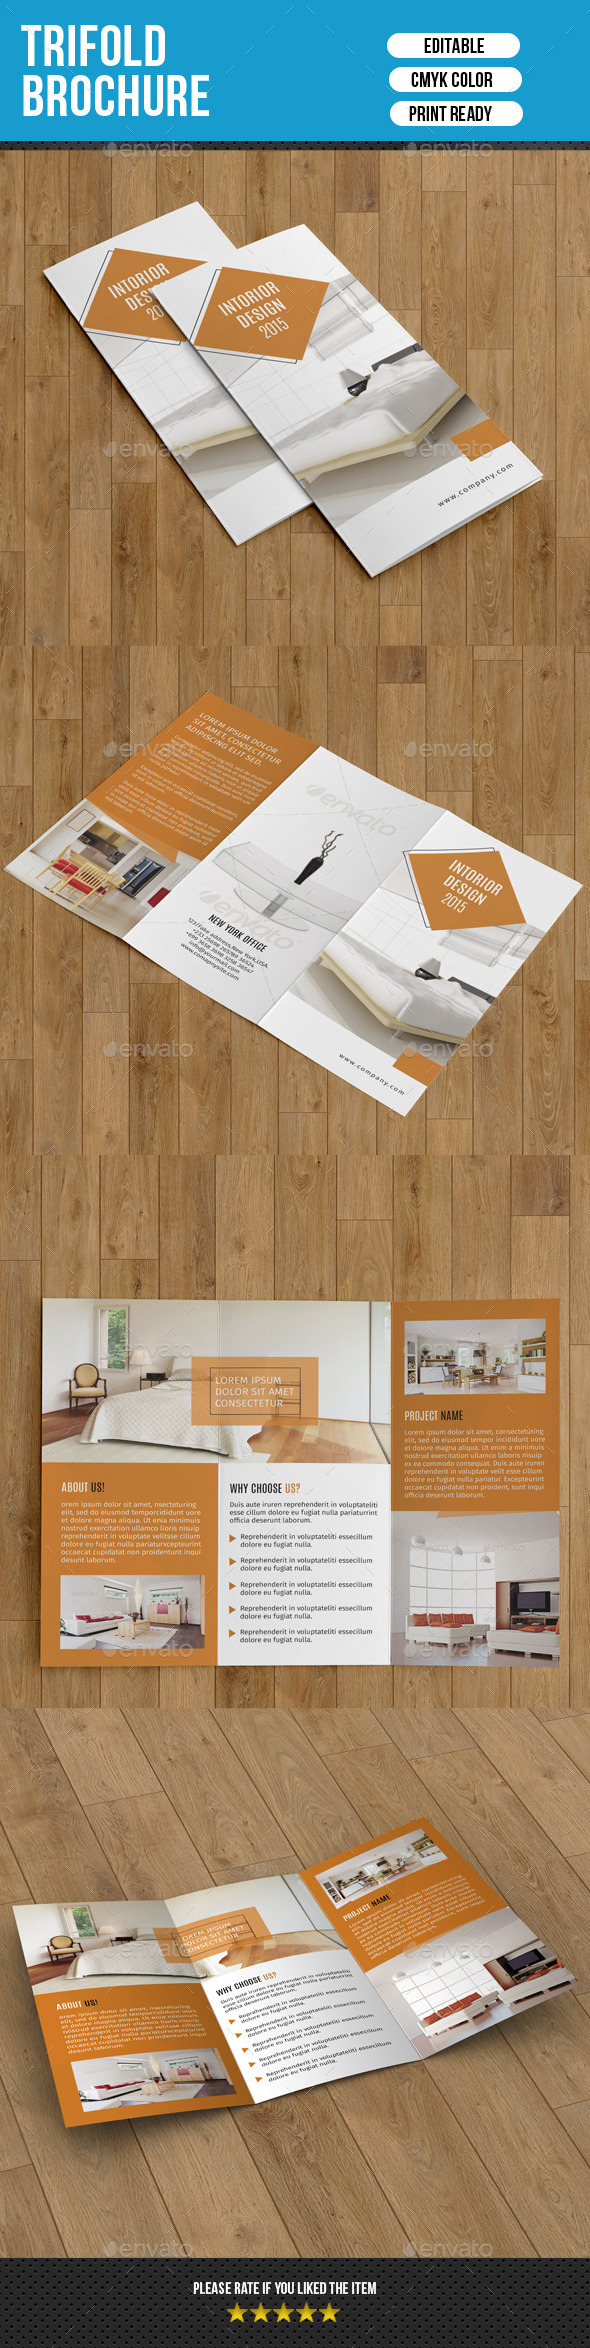 Trifold Brochure for Interior Design-V218 - Corporate Brochures